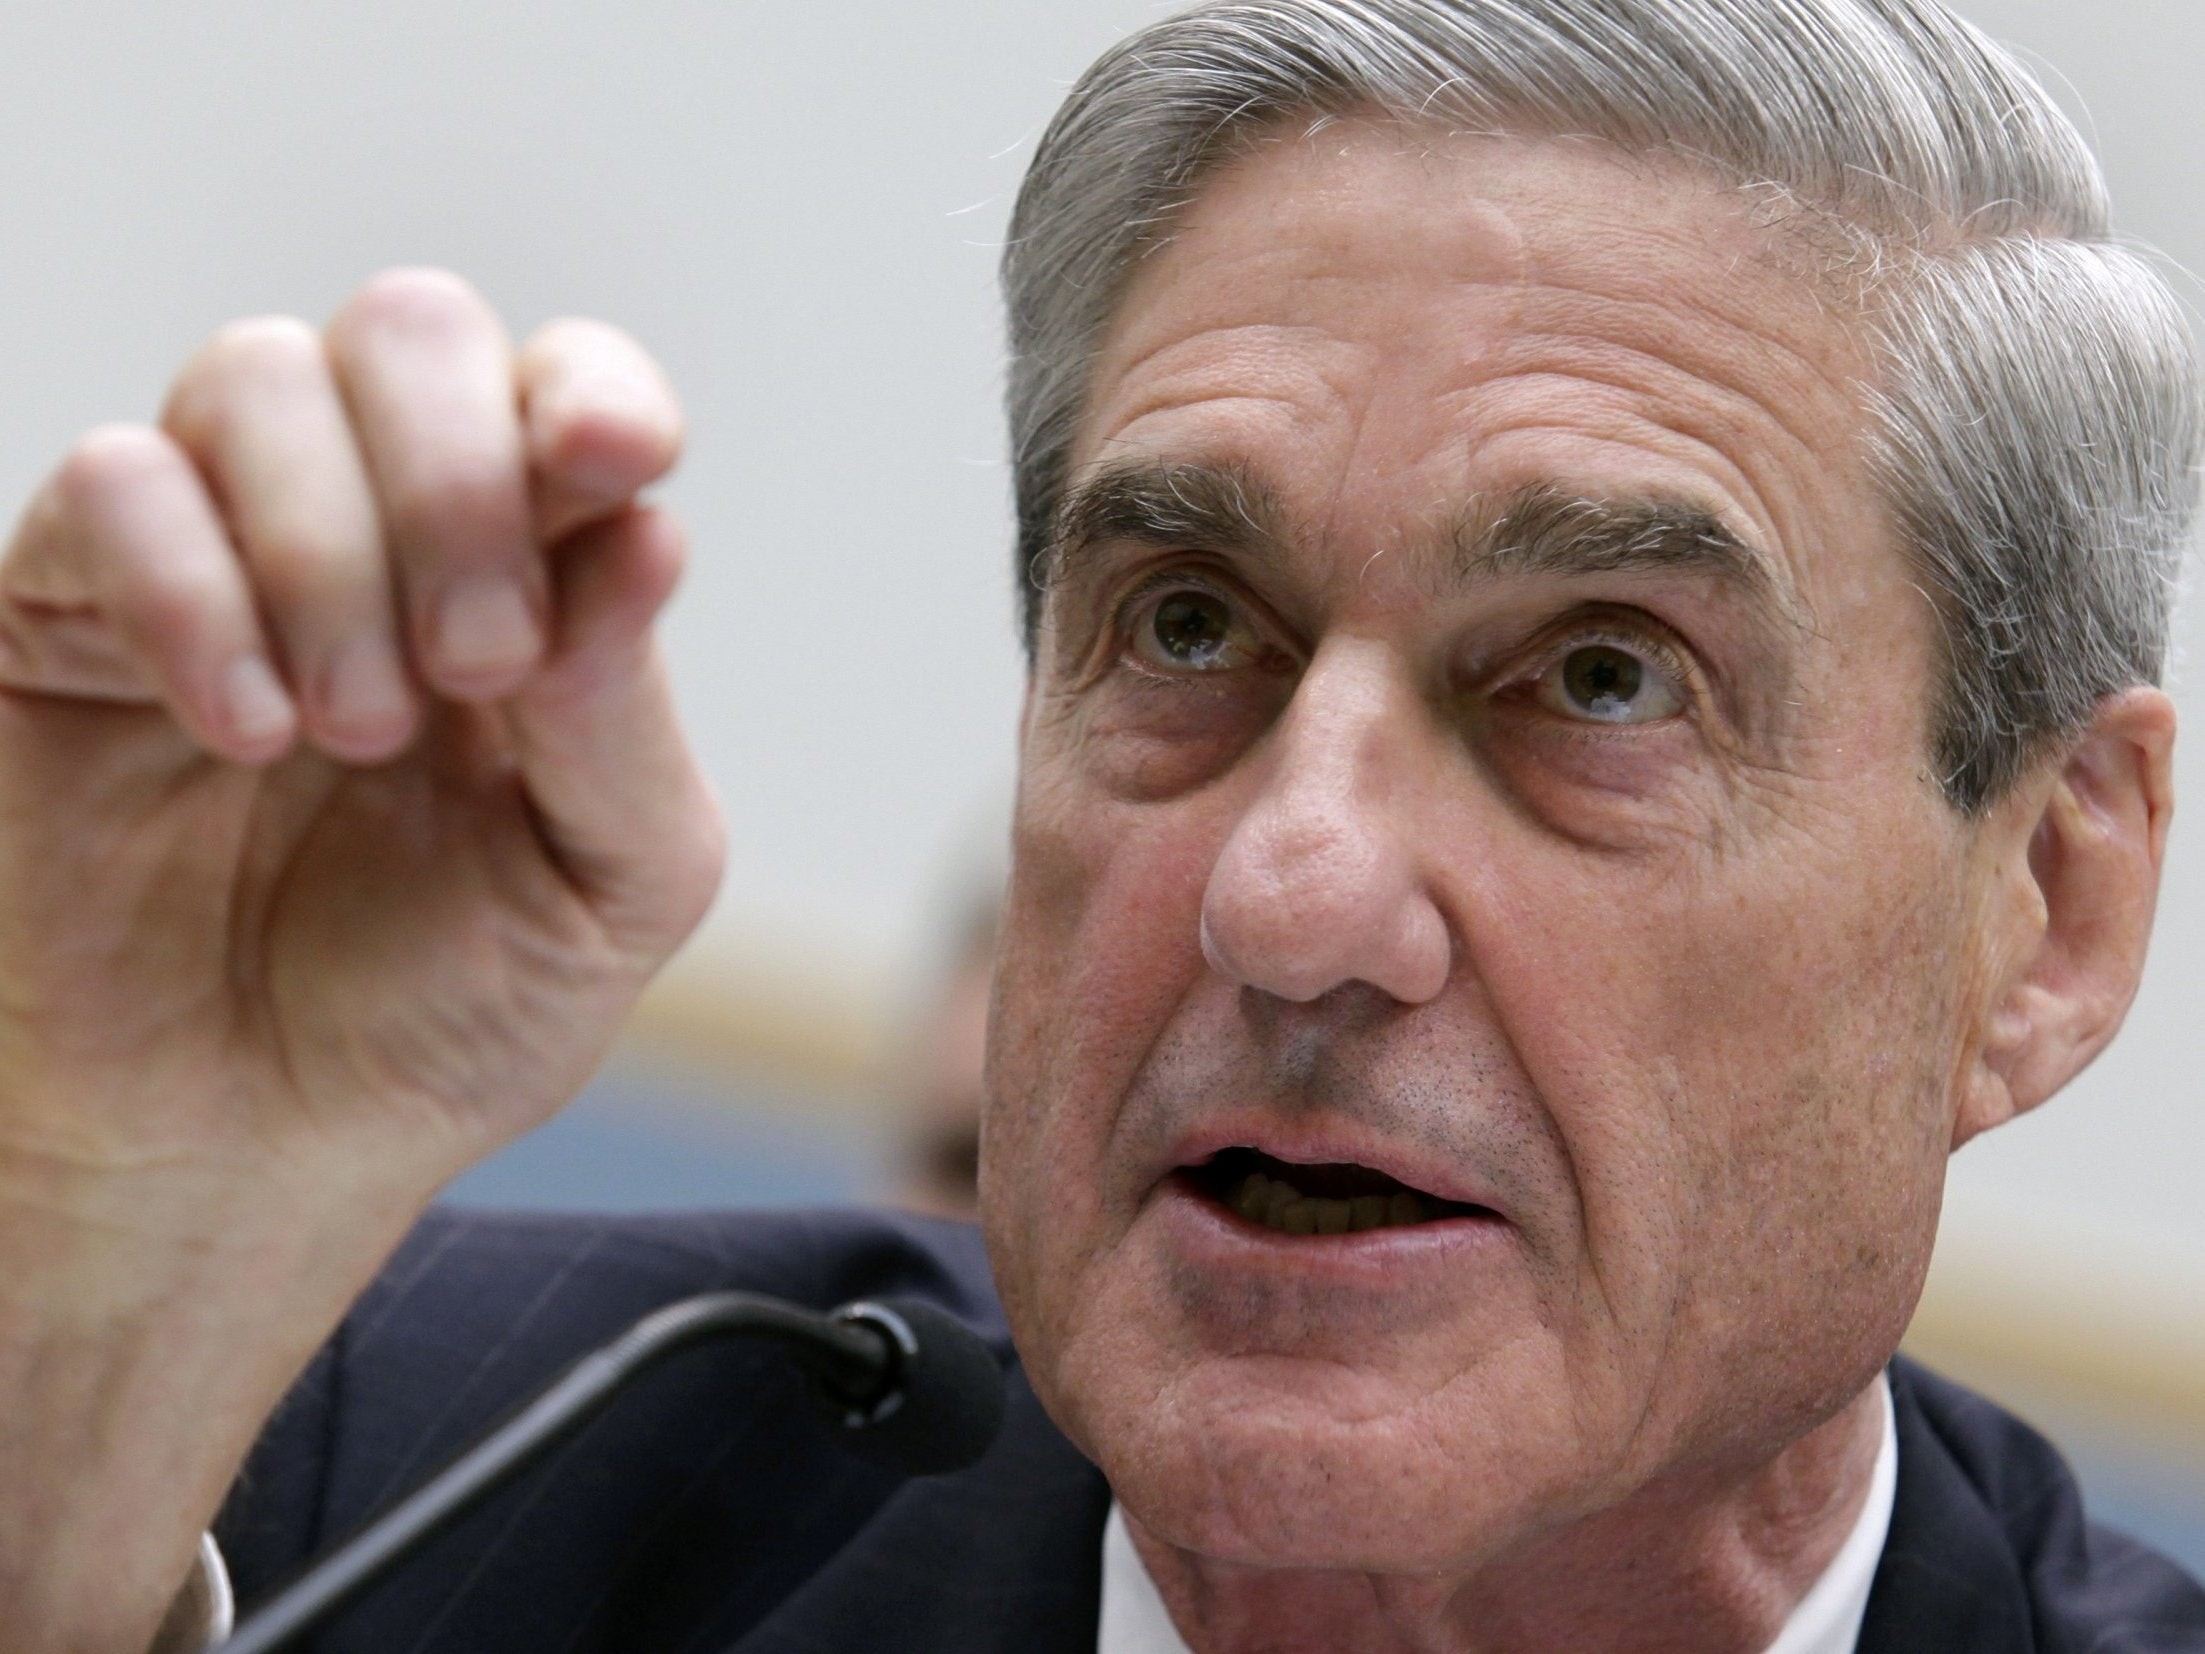 Robert Mueller complained about William Barr's 'no collusion' summary of Russia investigation report